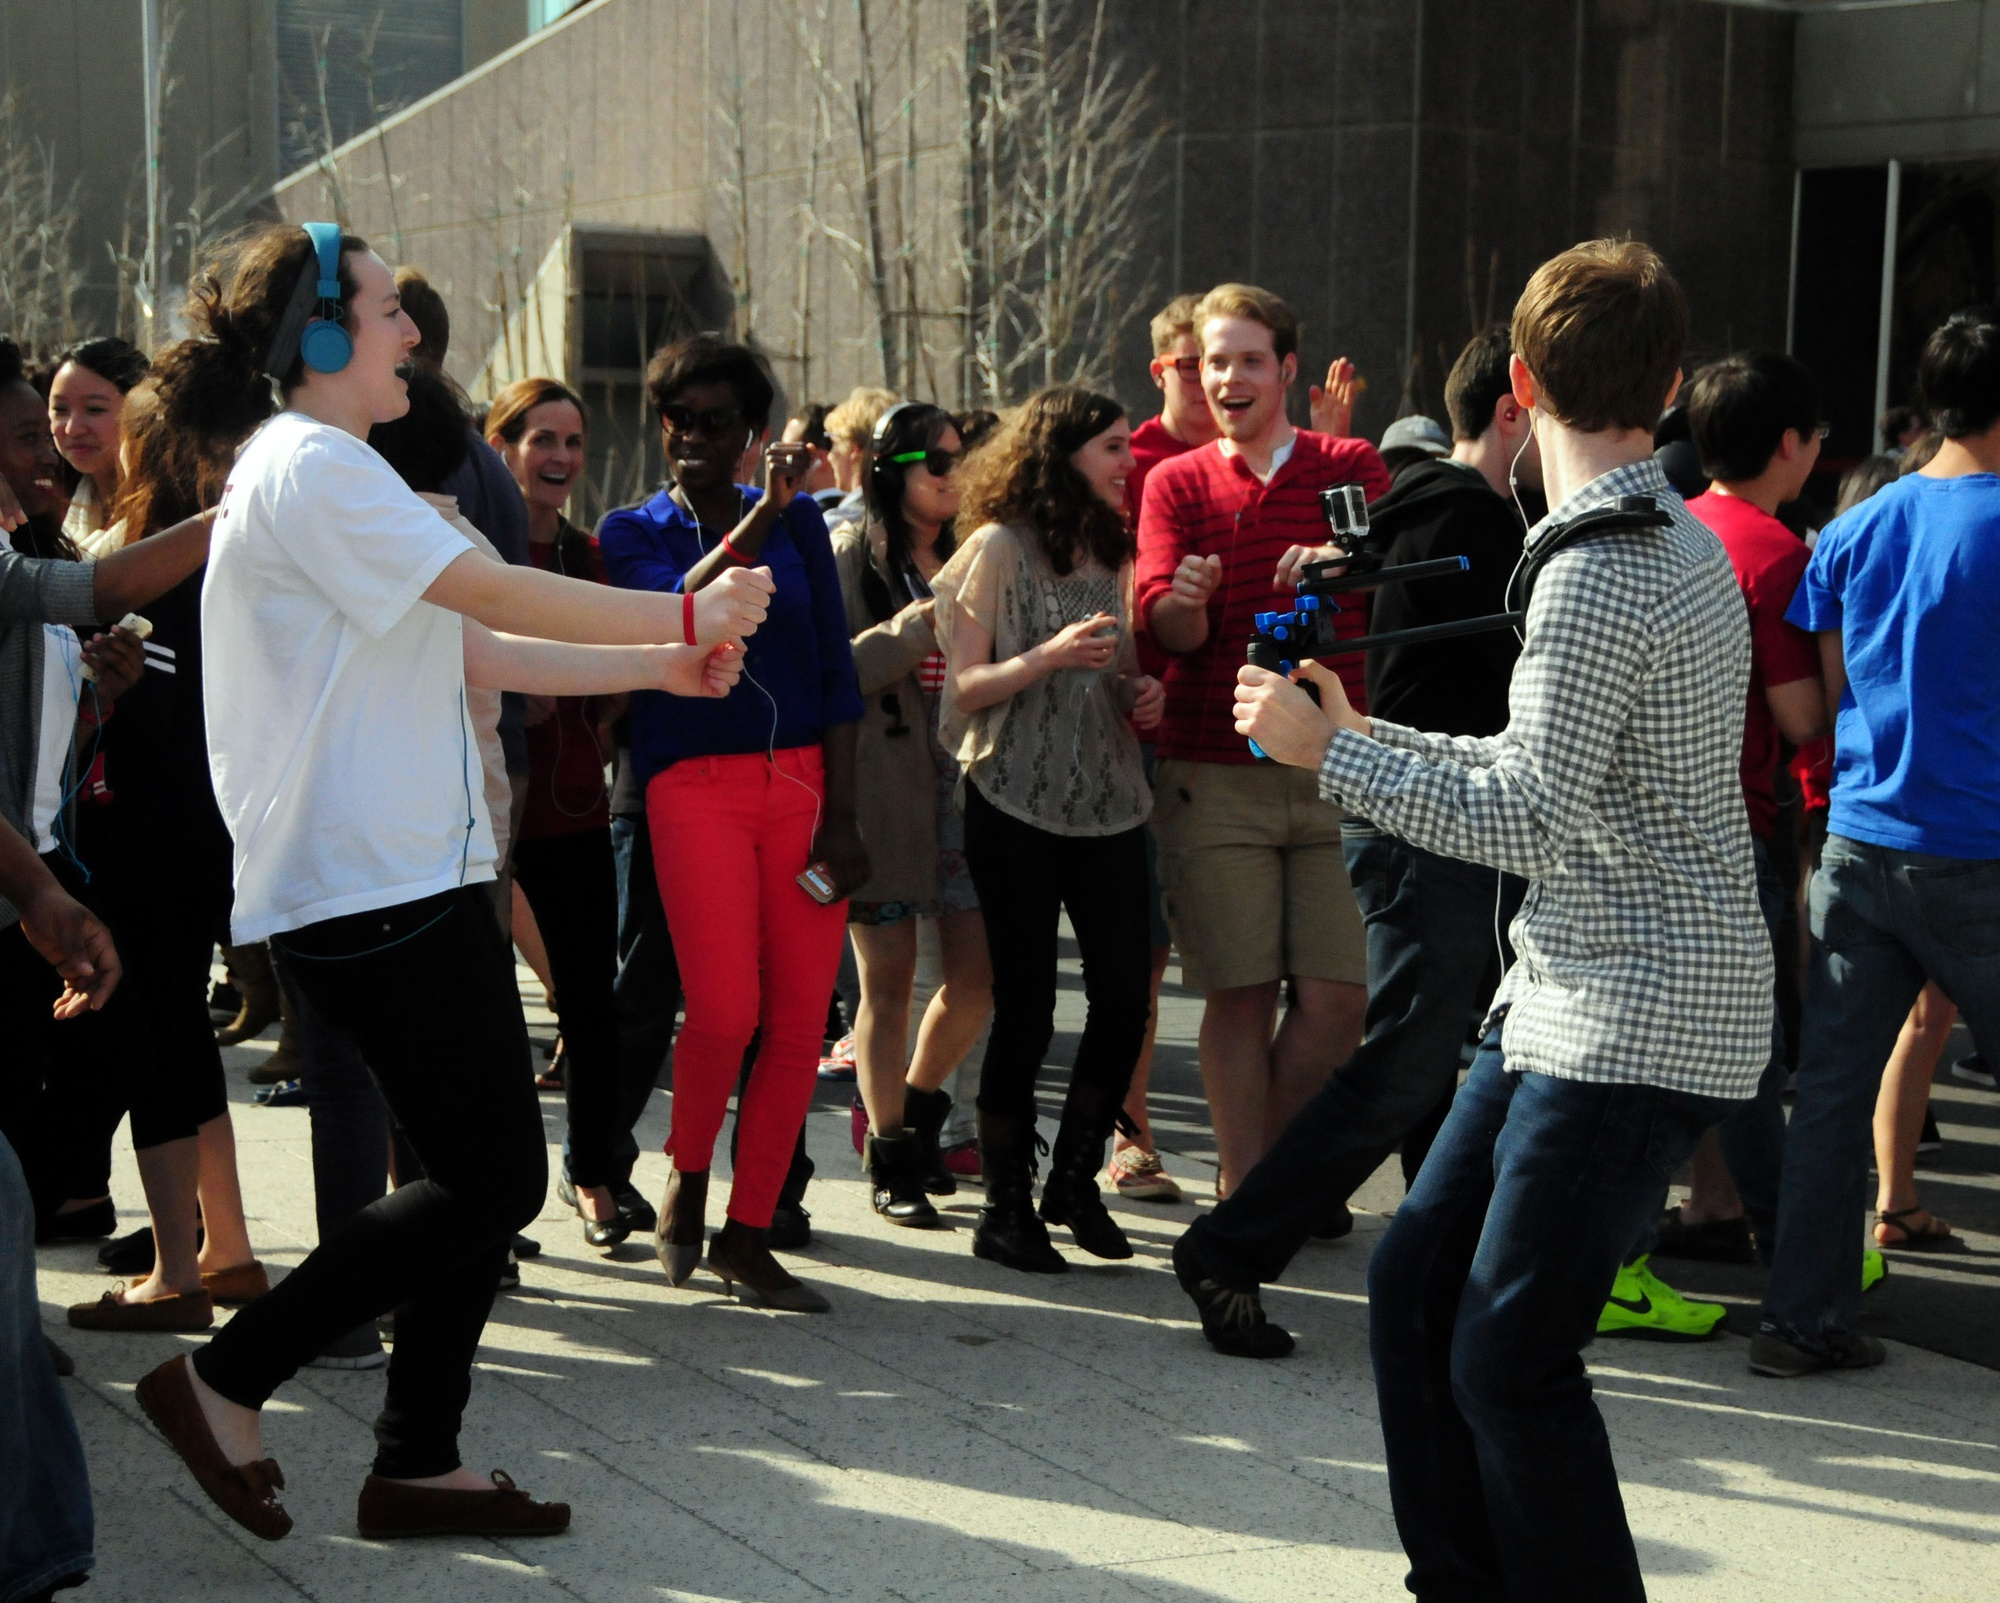 Students take part in a flash mob as part of Mob Malaria on World Malaria Day.